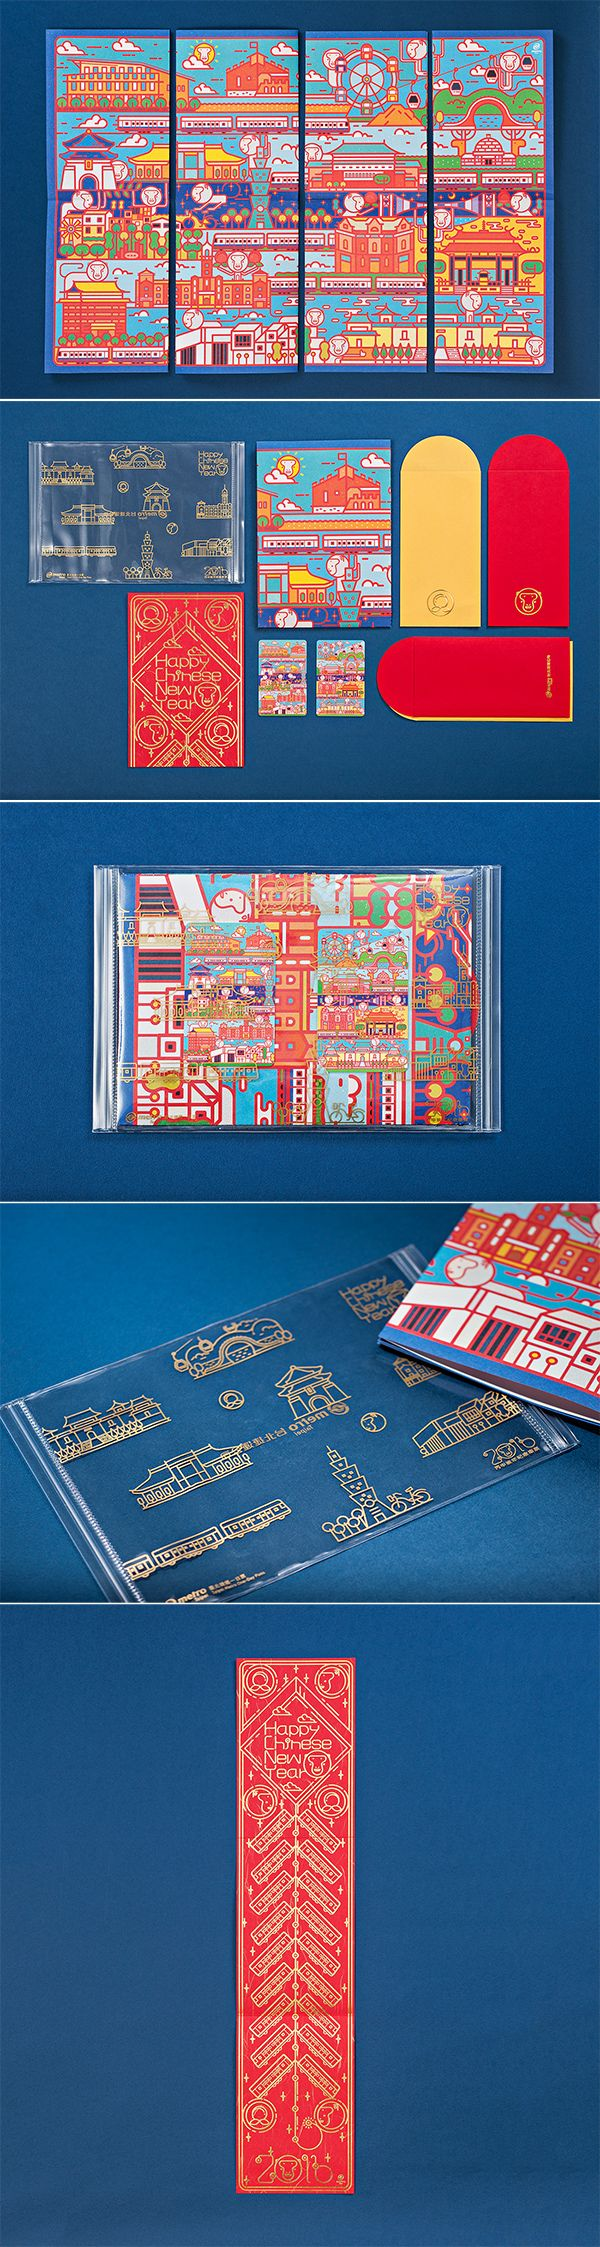 Taipei Metro / Year of the Monkey Commemorative Tickets